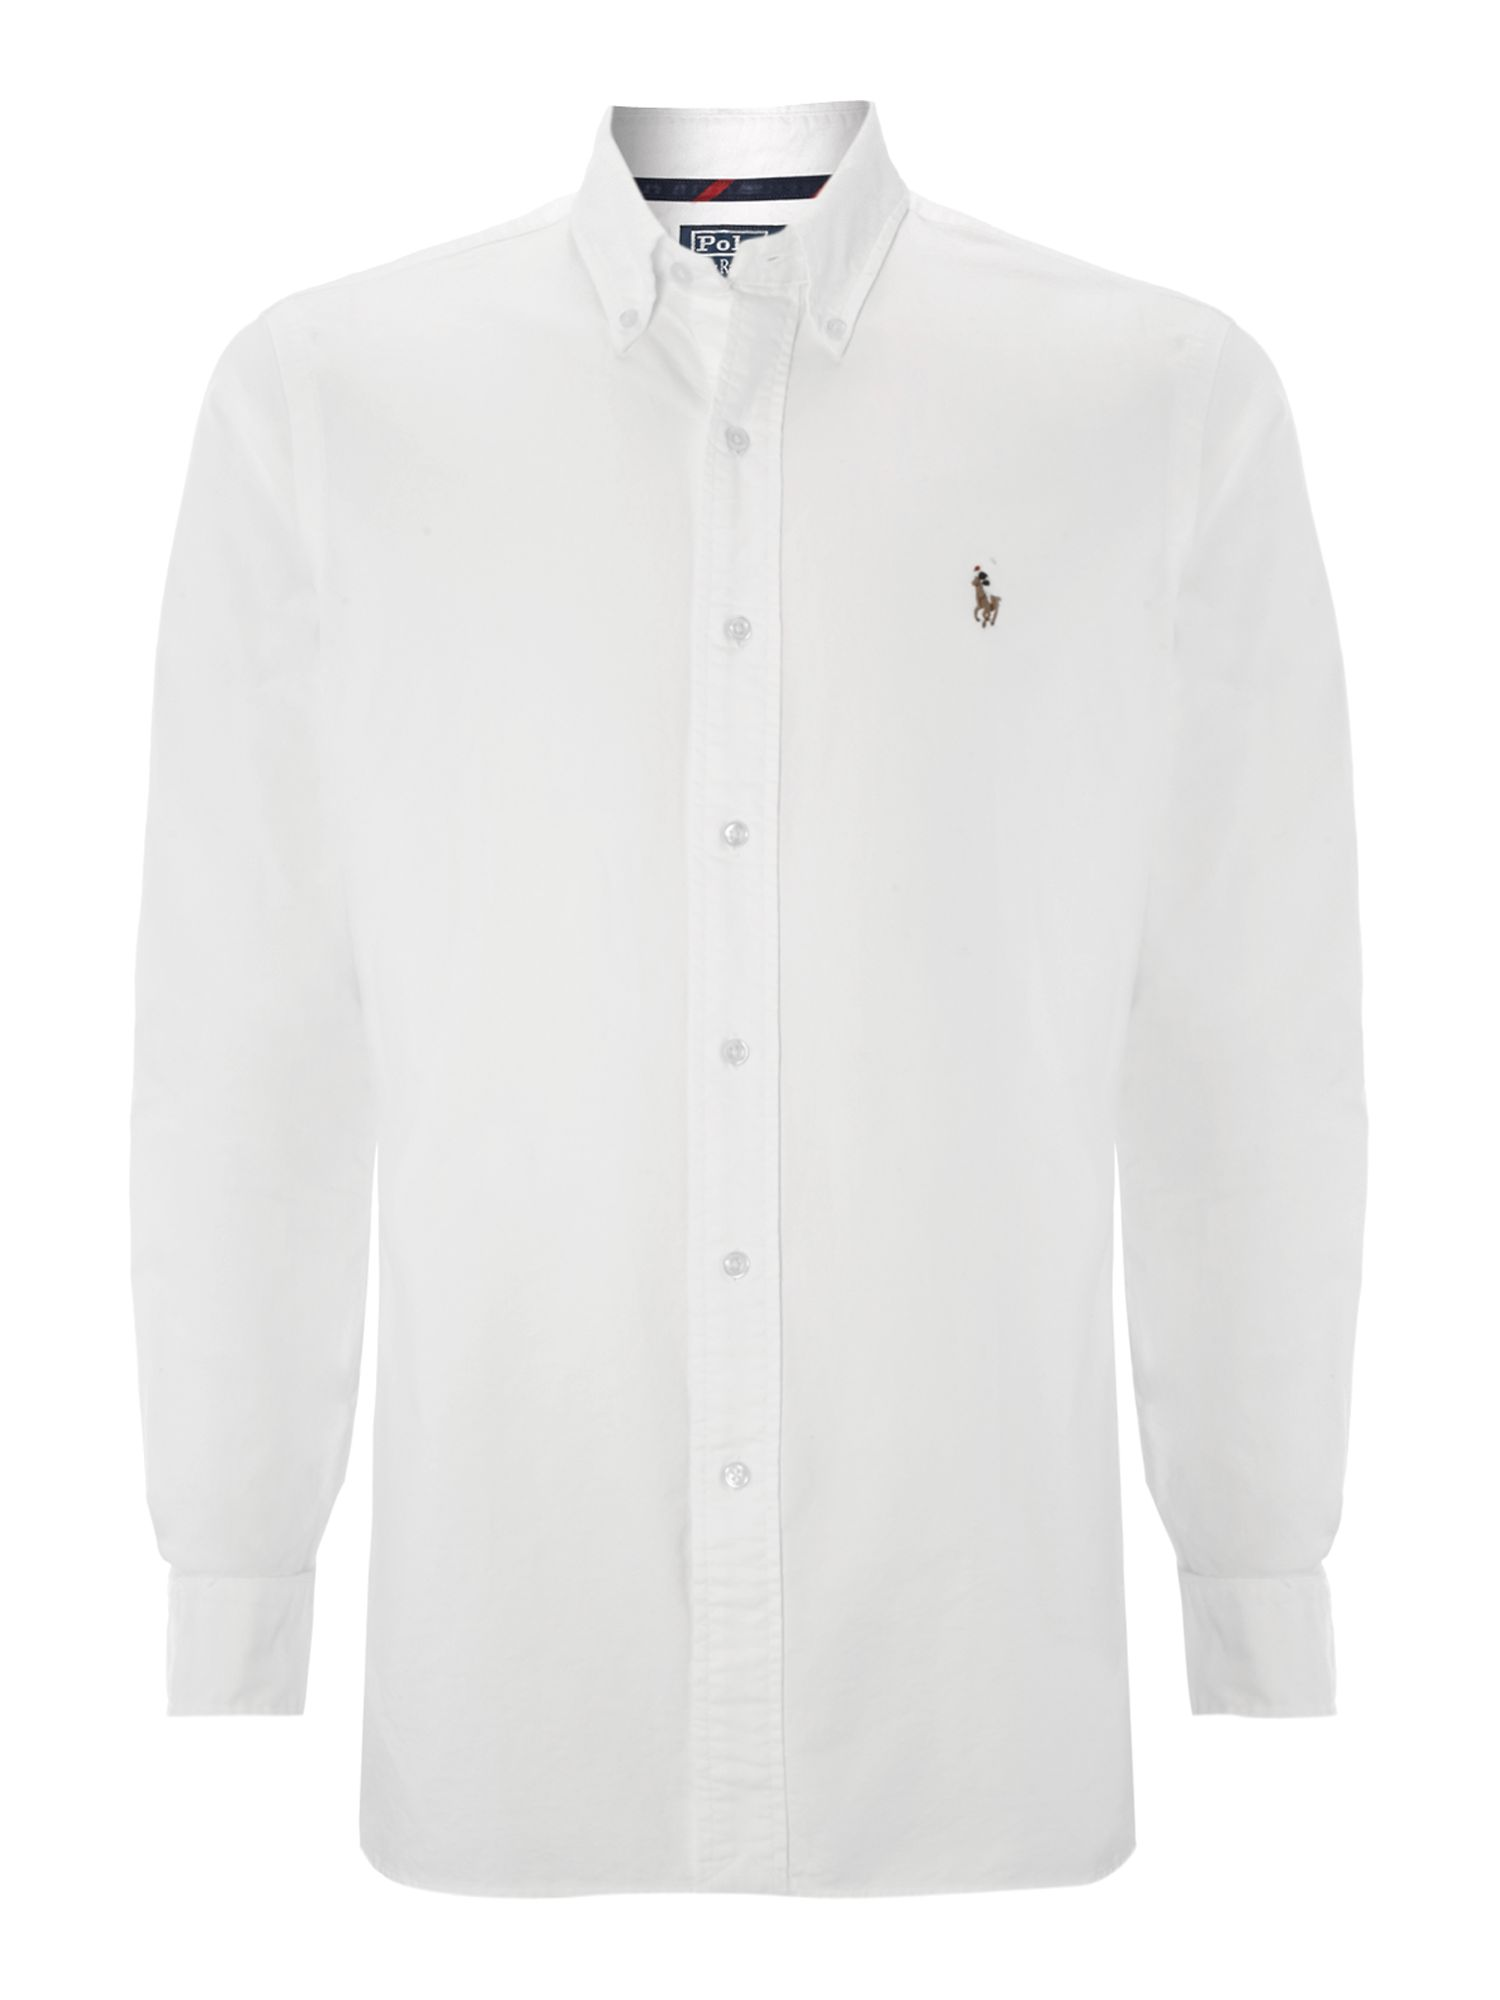 polo ralph lauren long sleeved slim fit oxford shirt in white for men. Black Bedroom Furniture Sets. Home Design Ideas